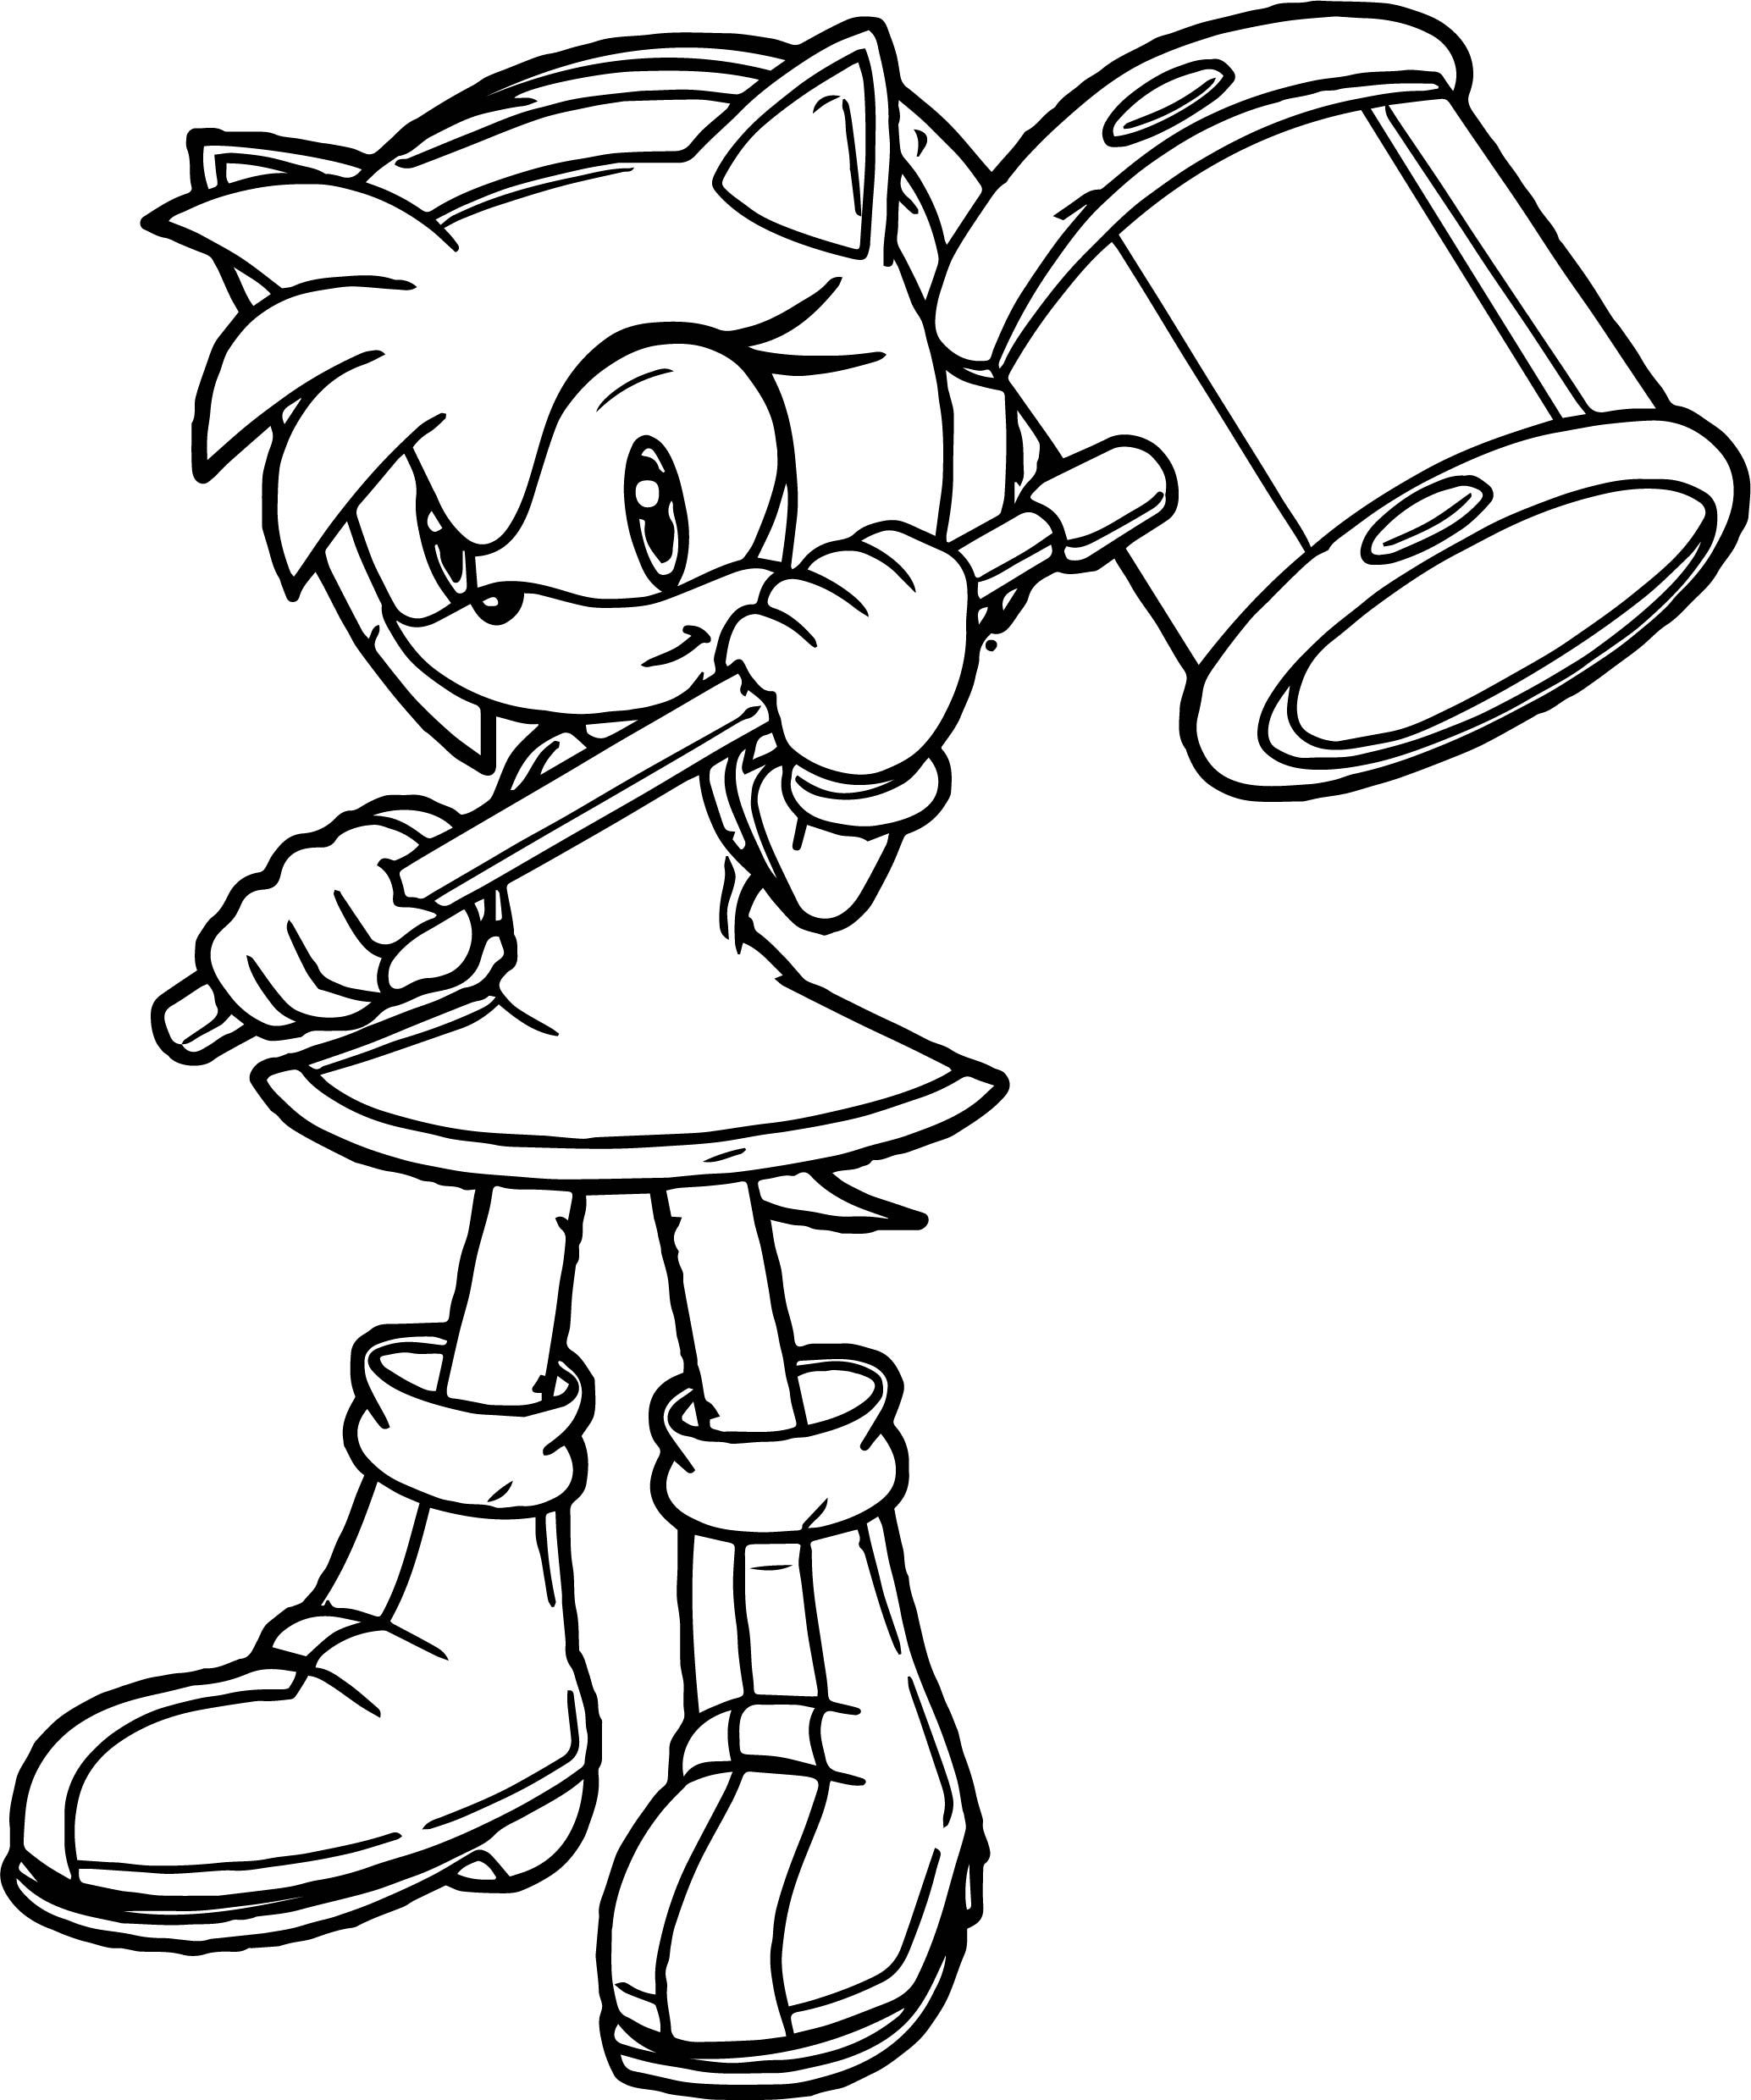 Nice Cute Amy Rose Hammer Coloring Page Amy Rose Coloring Pages Cartoon Coloring Pages